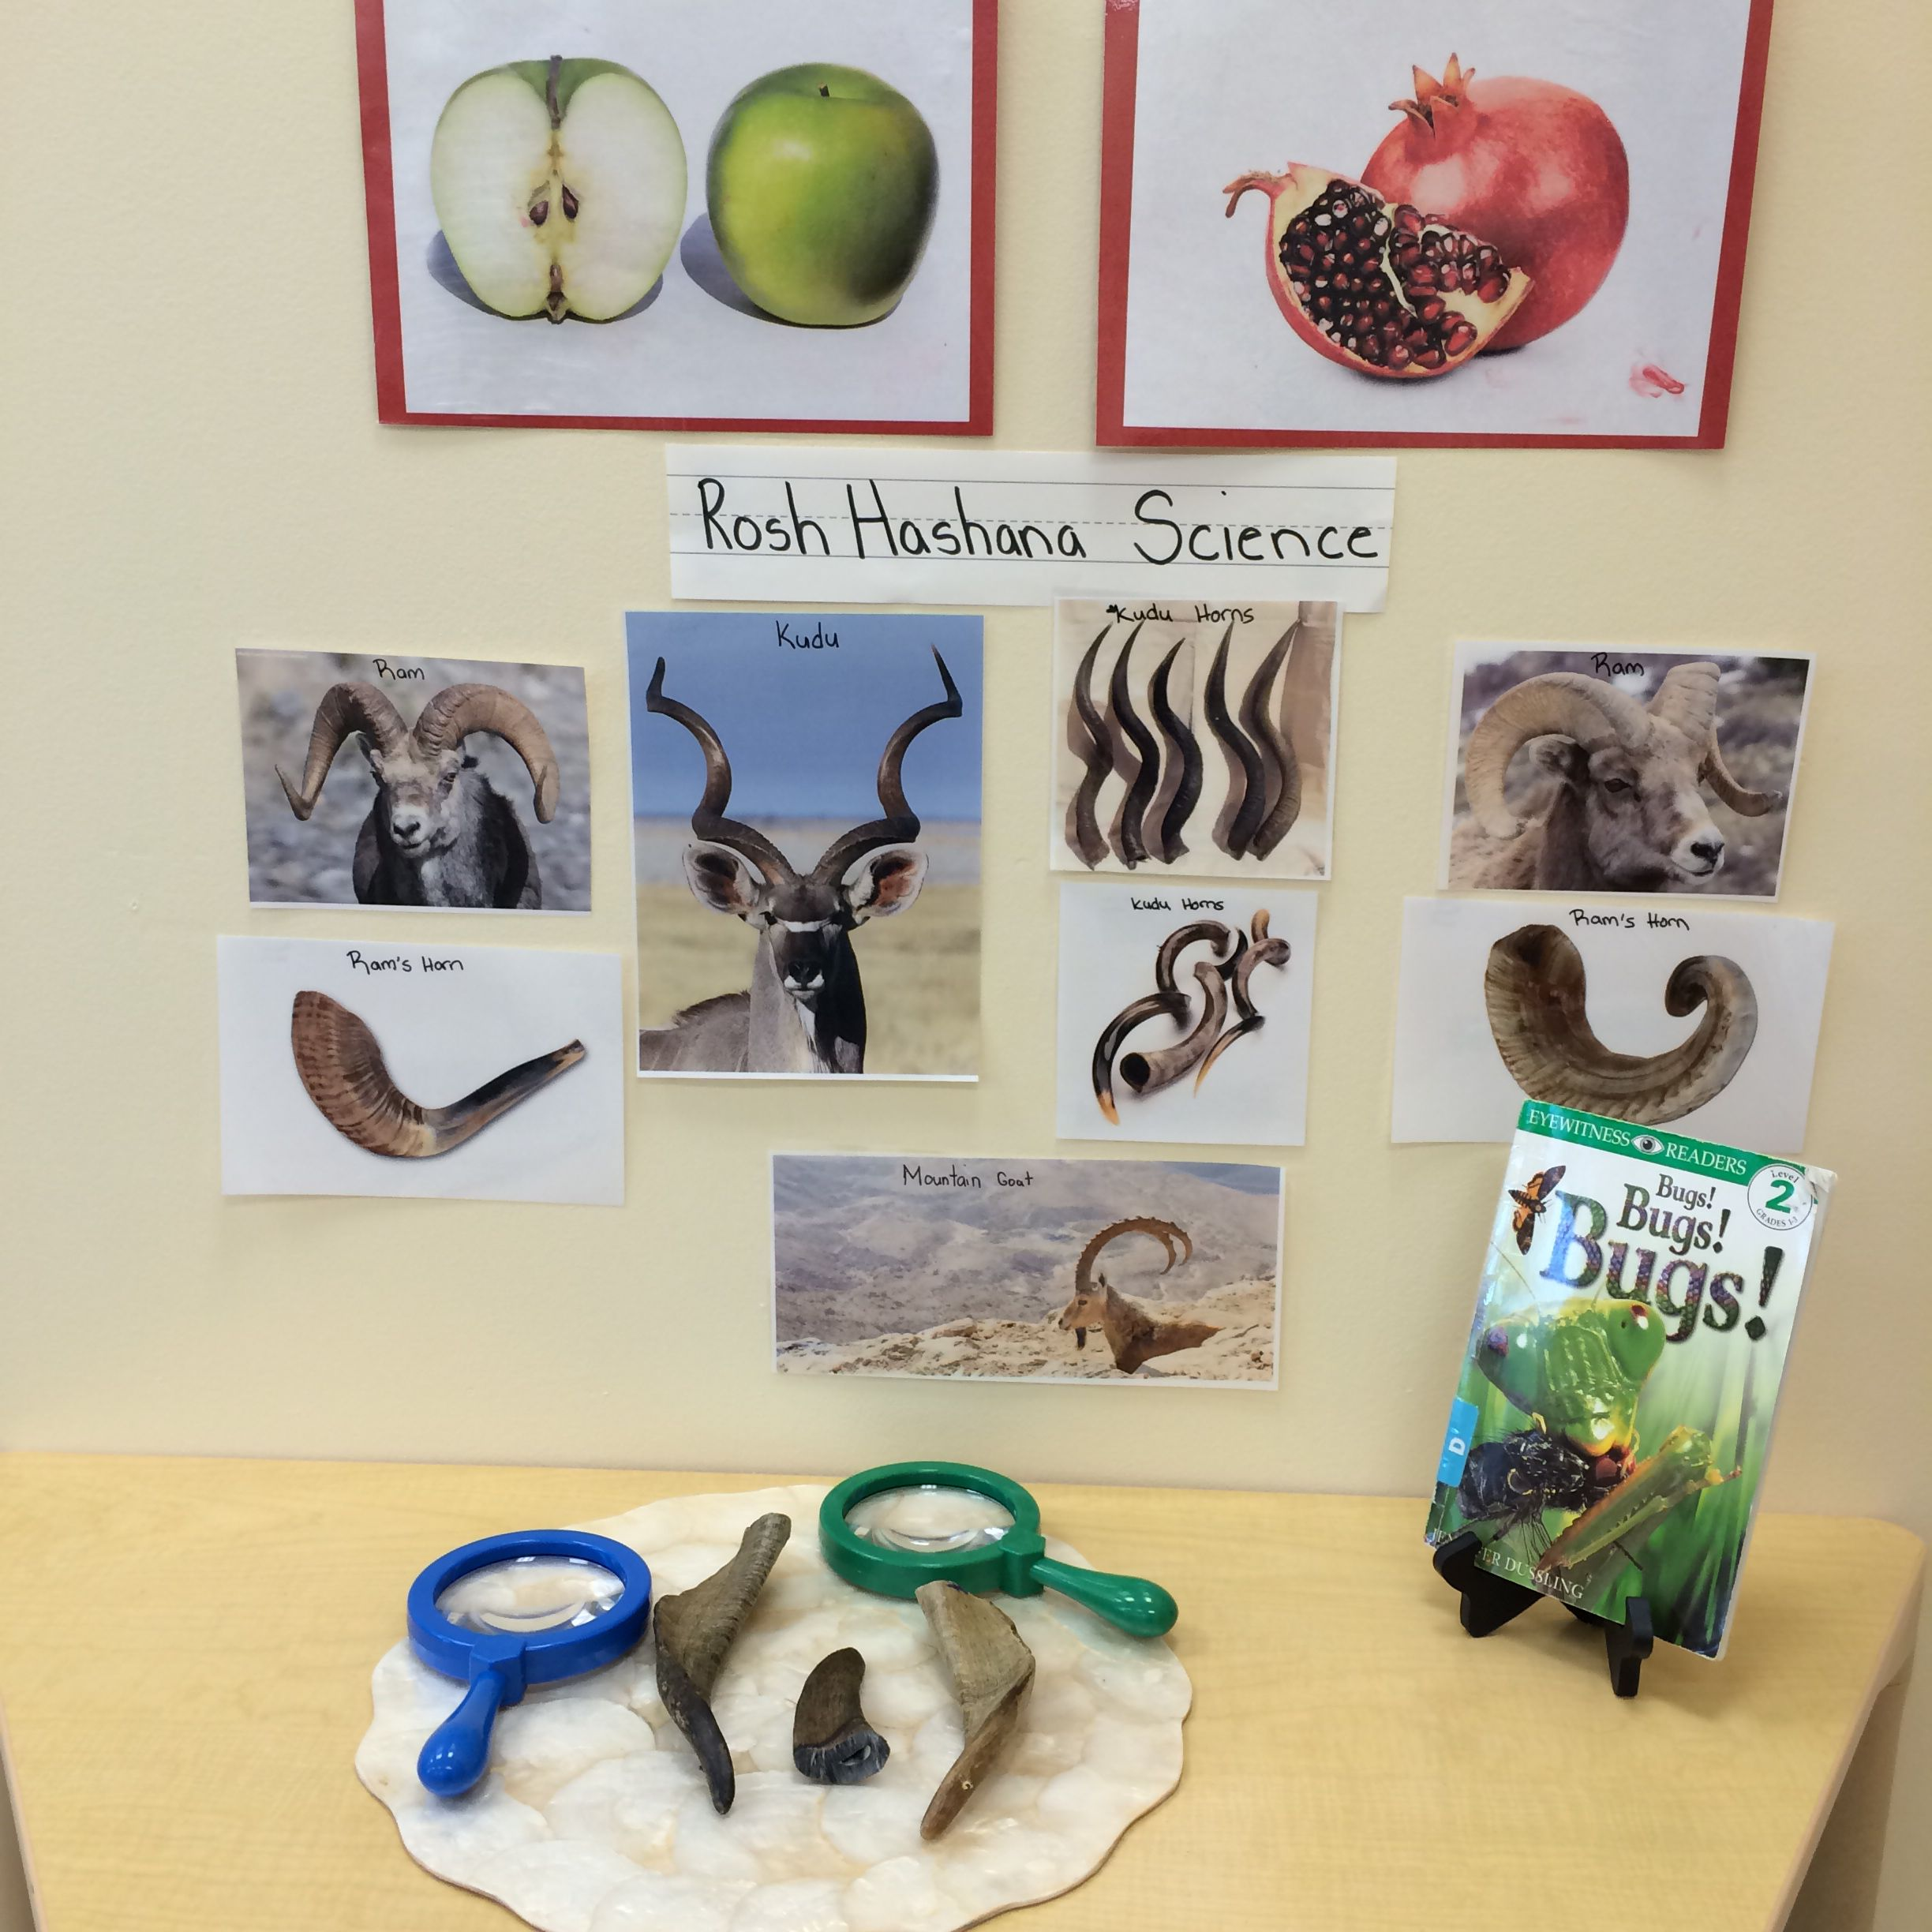 Rosh Hashana Science Display